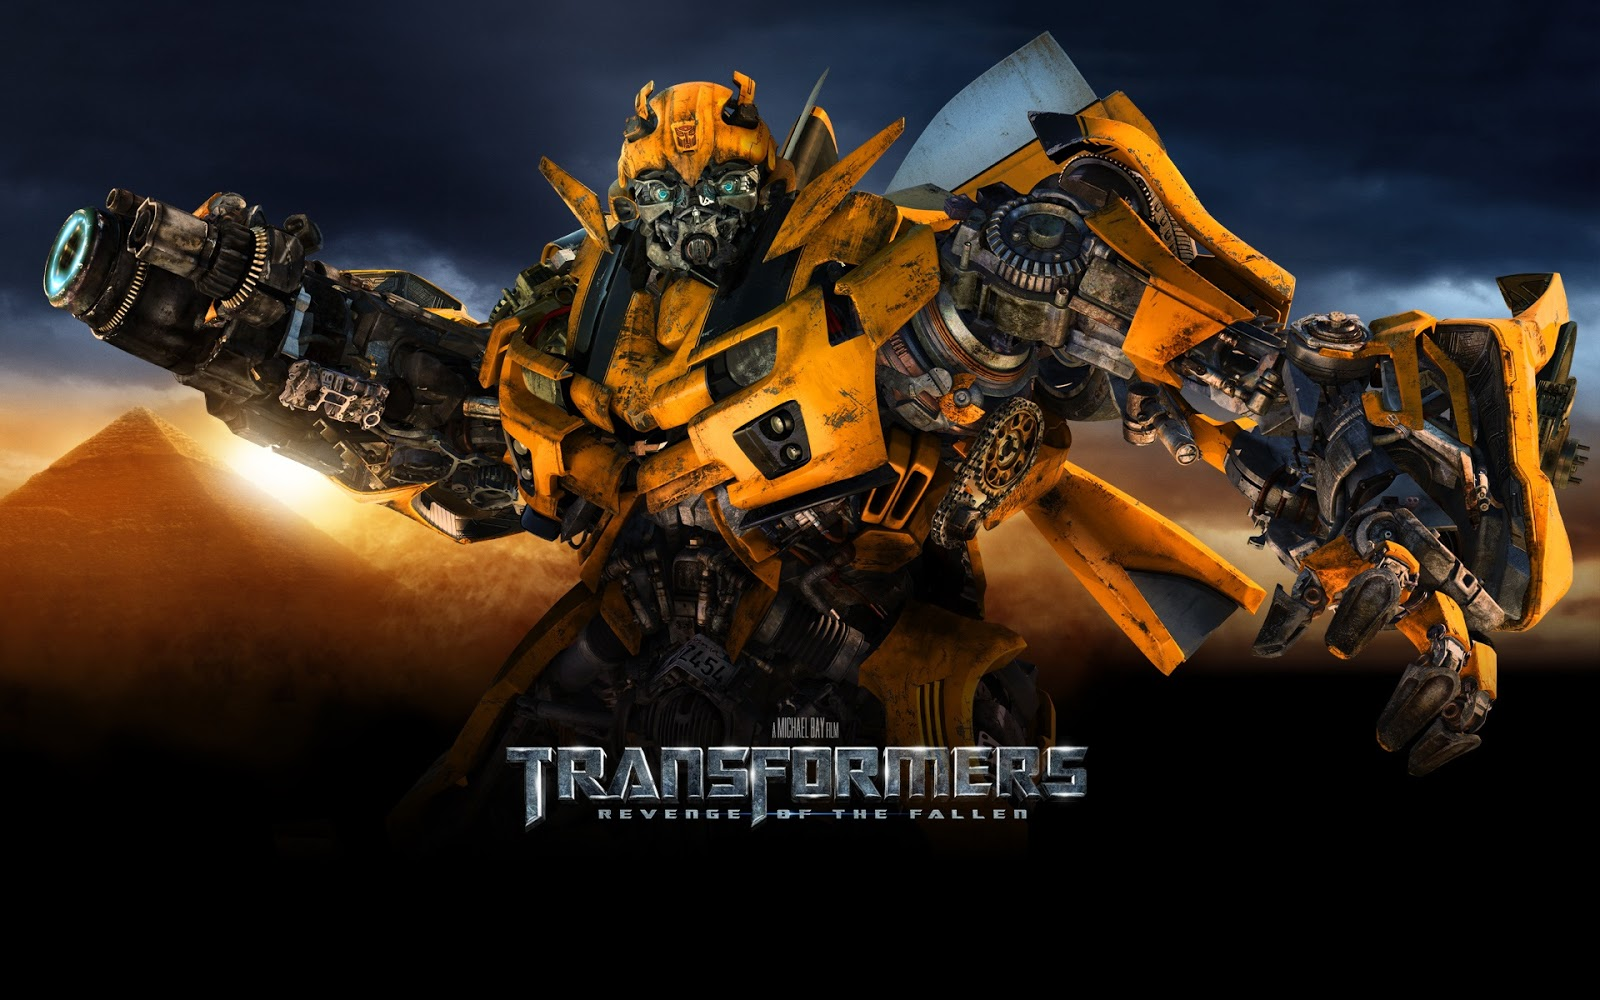 transformers wallpaper bumblebee  Wallpaper Transformers 4 Bumblebee For Laptop - ultra view imaging